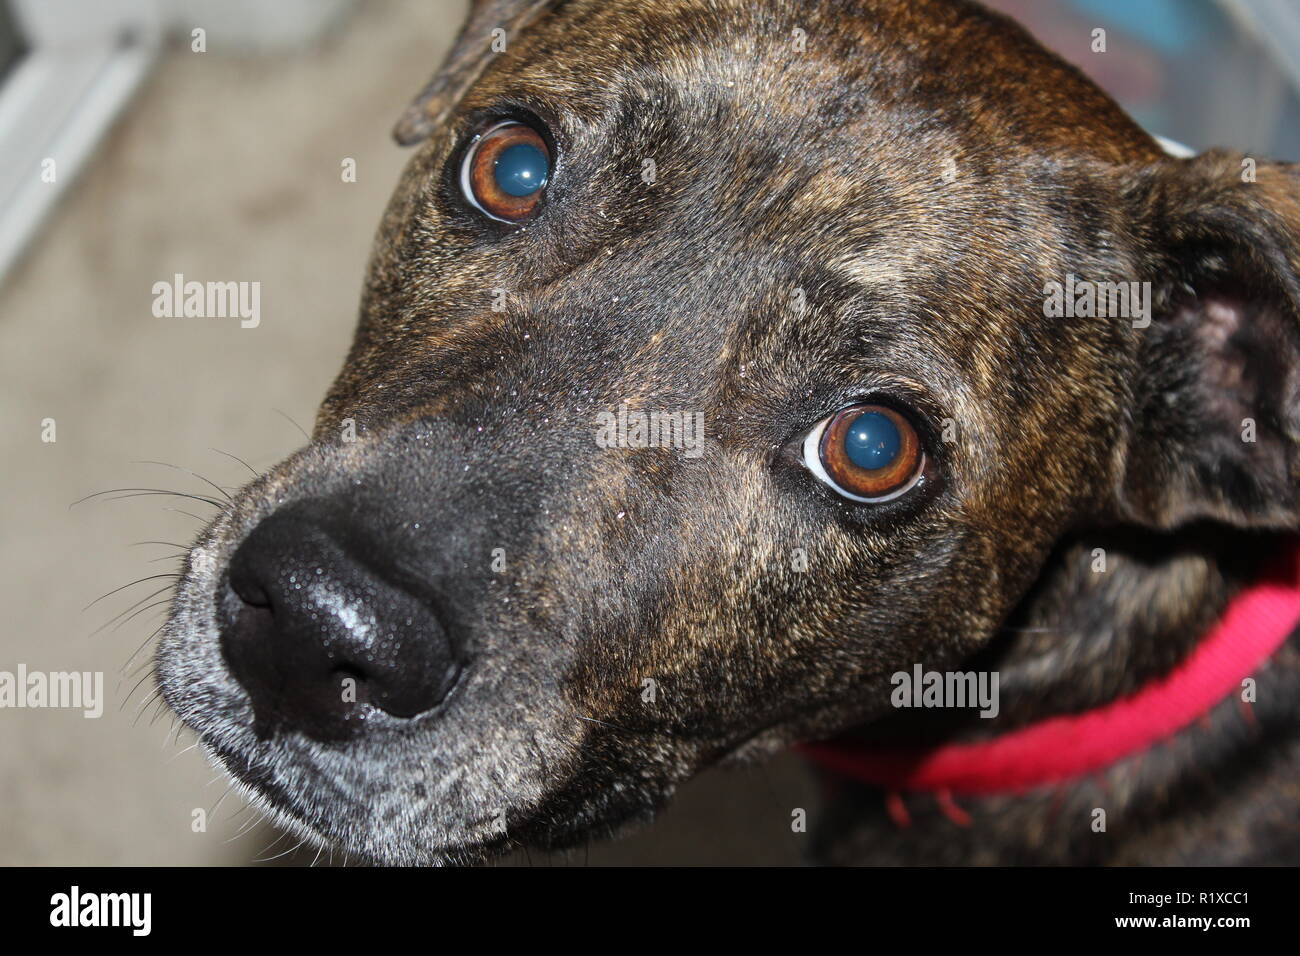 a dog looks at the camera with big round eyes - Stock Image